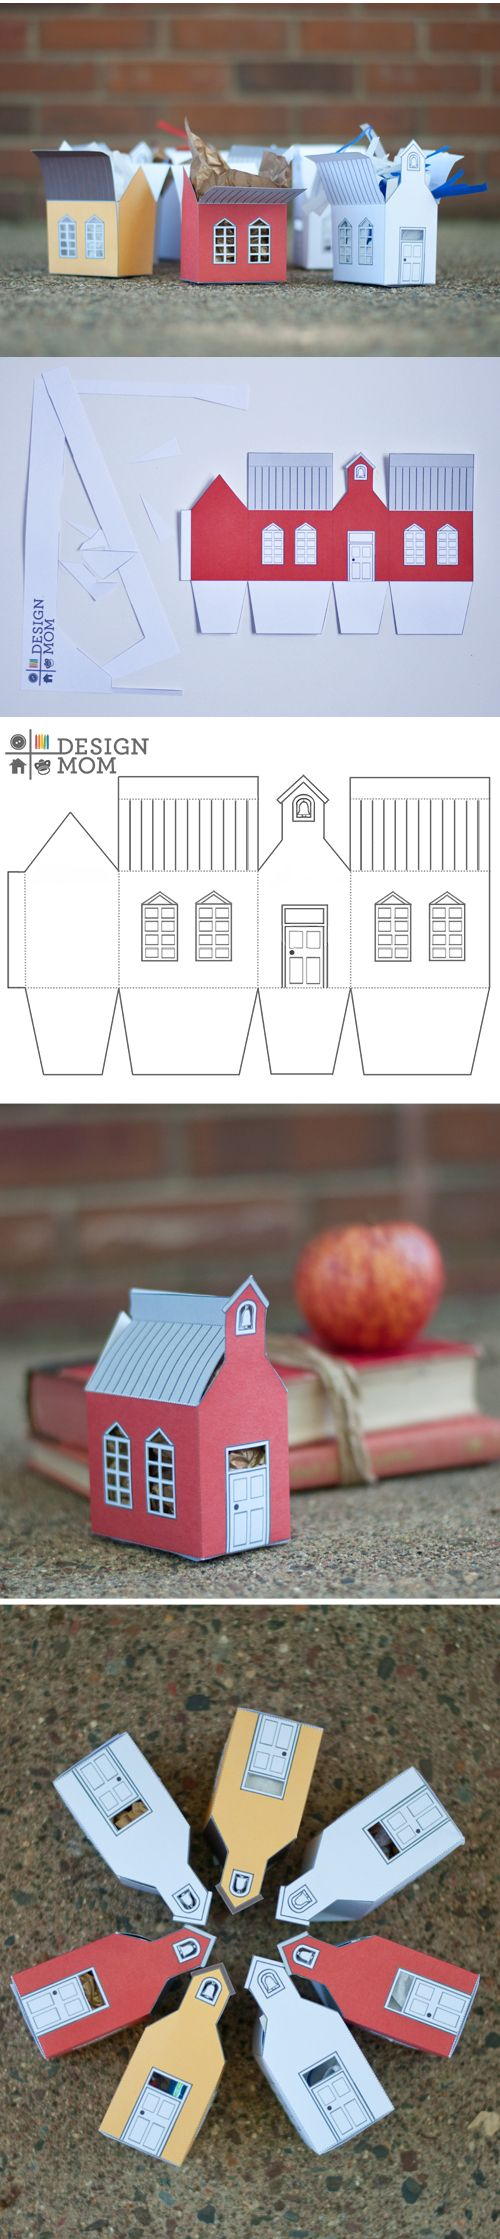 the perfect gift school house gift box school learning parties crafts pinterest box templates free printable and template